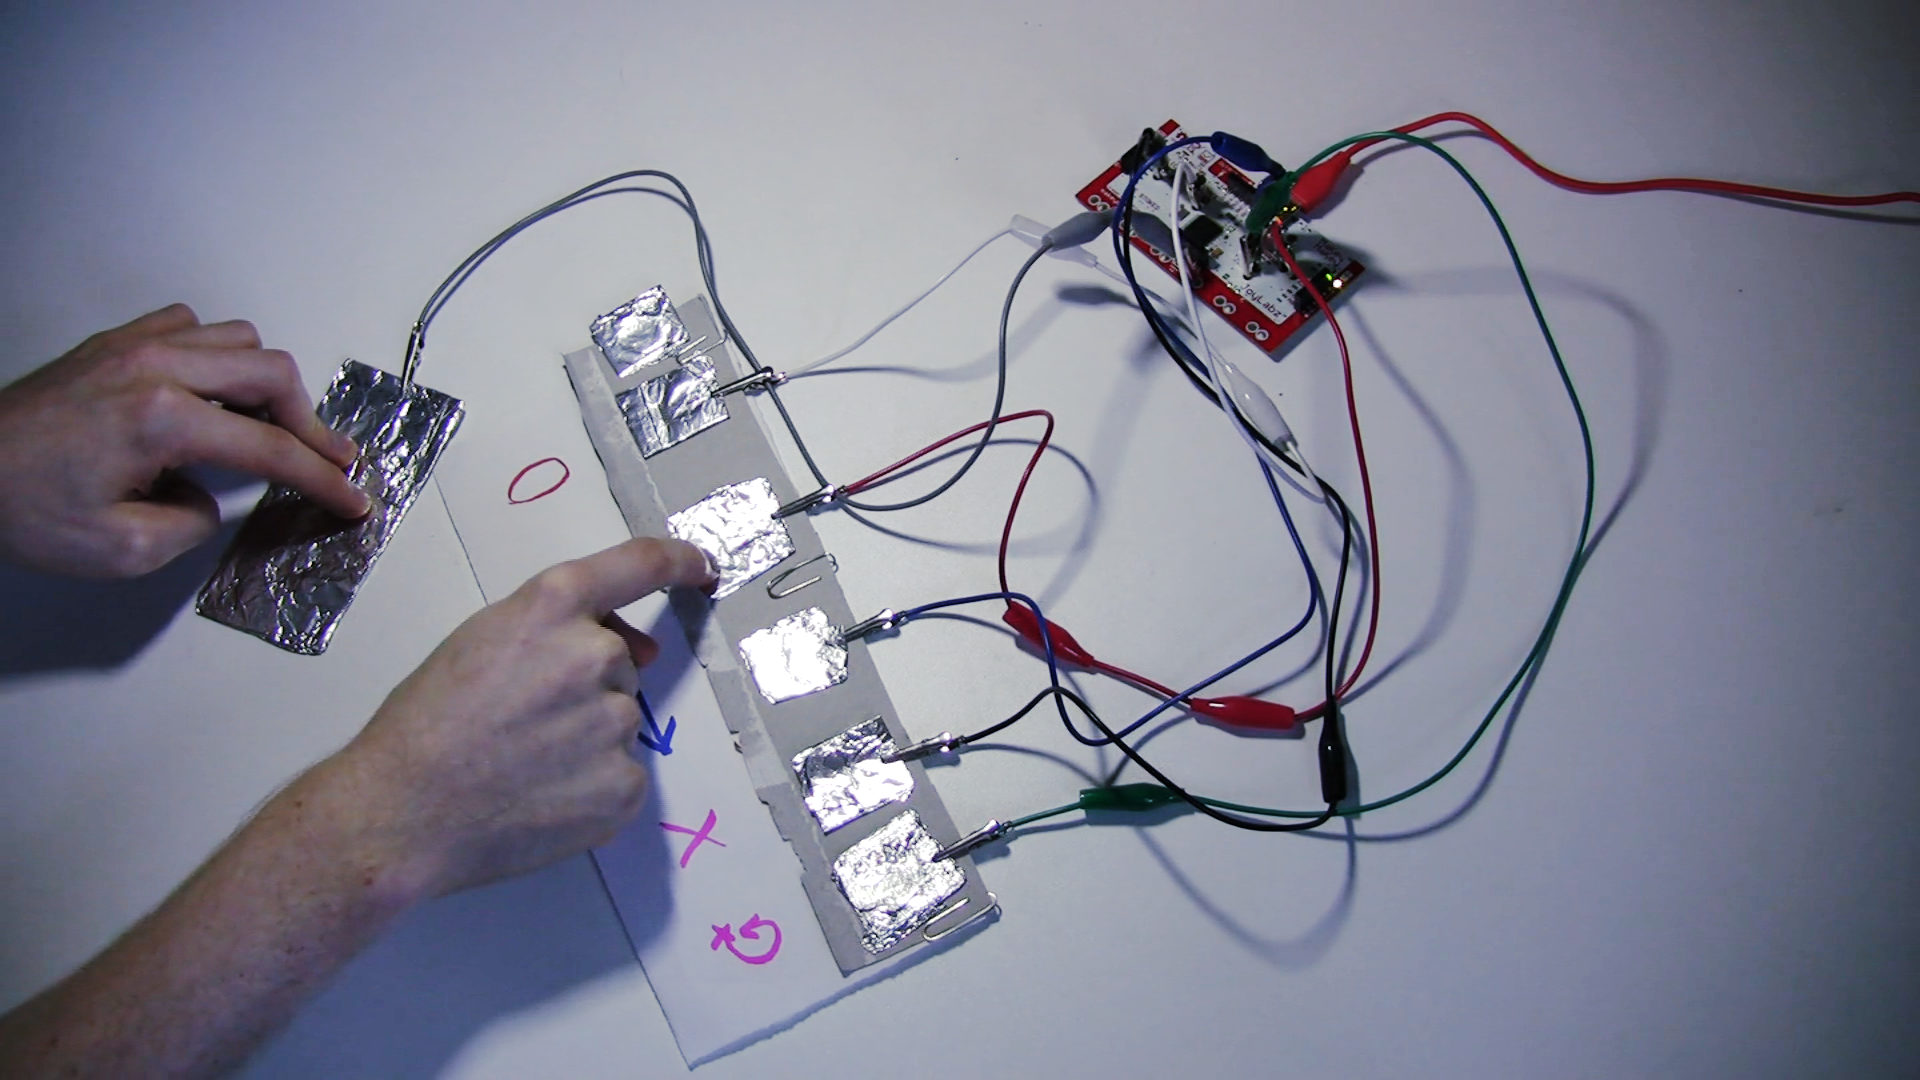 MIDI Notes Sequence with JSFX: Demo on Makey Makey / ExtremRaym